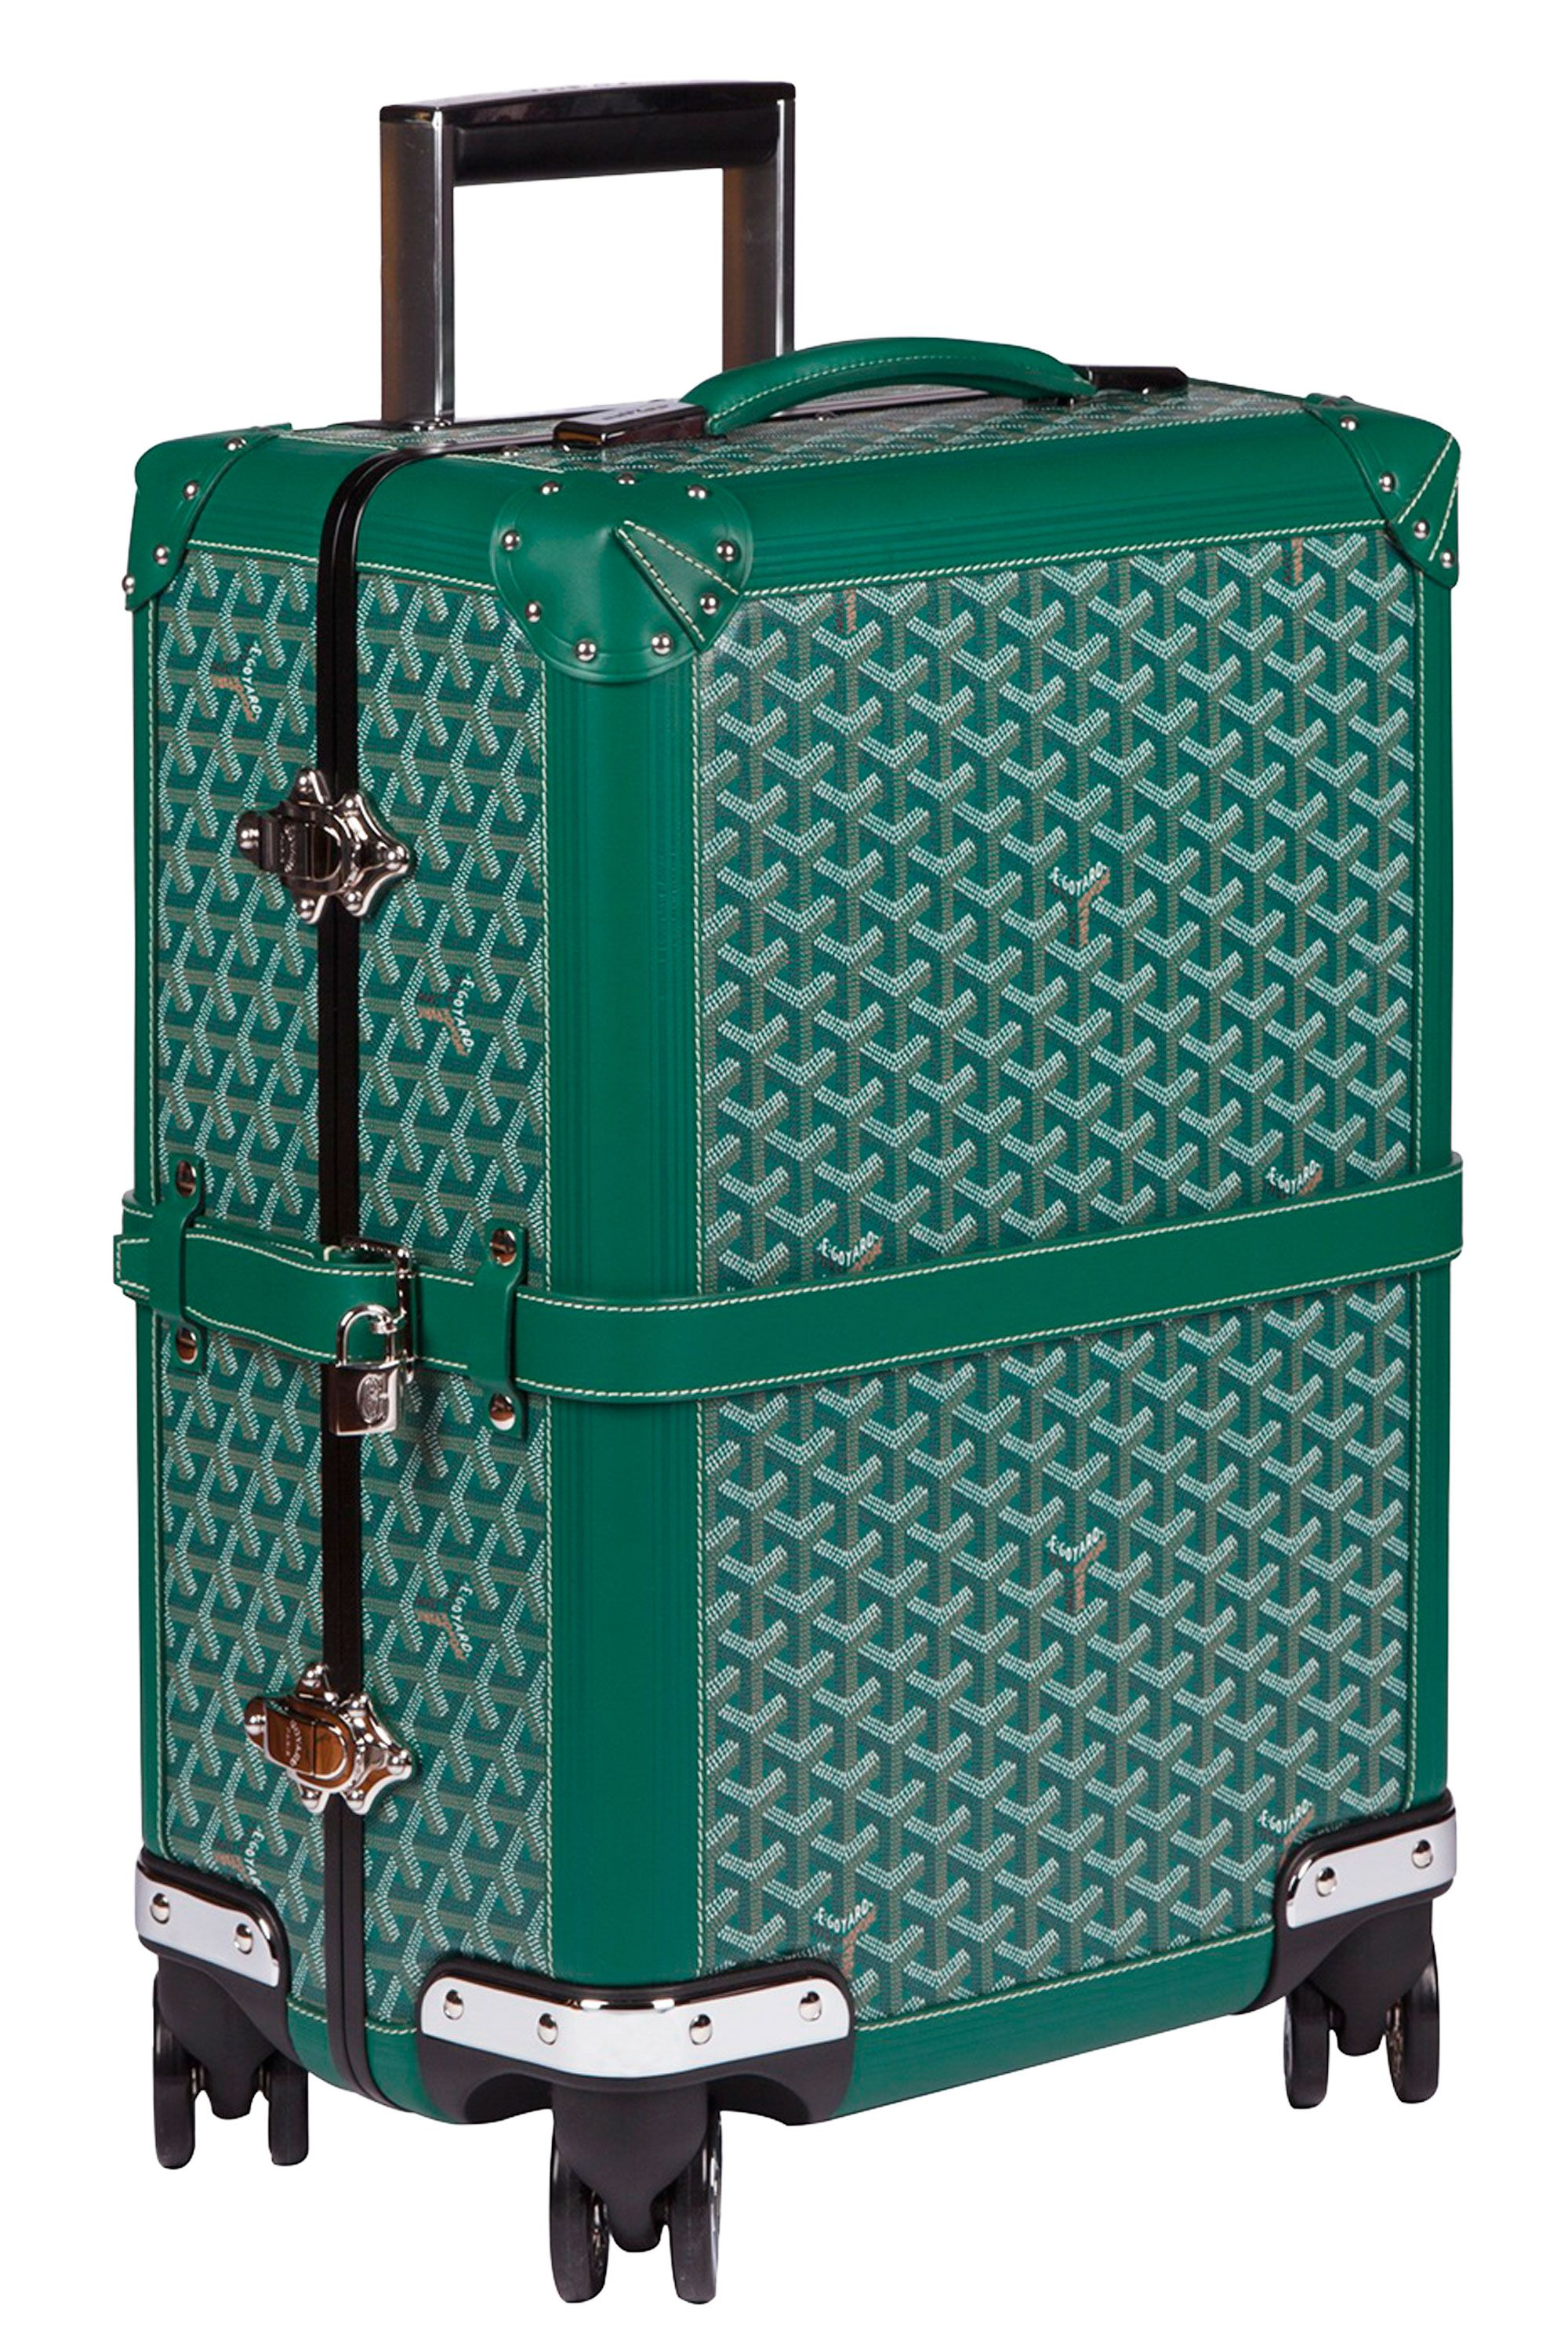 Designer Luggage Brands - Luxury Baggage